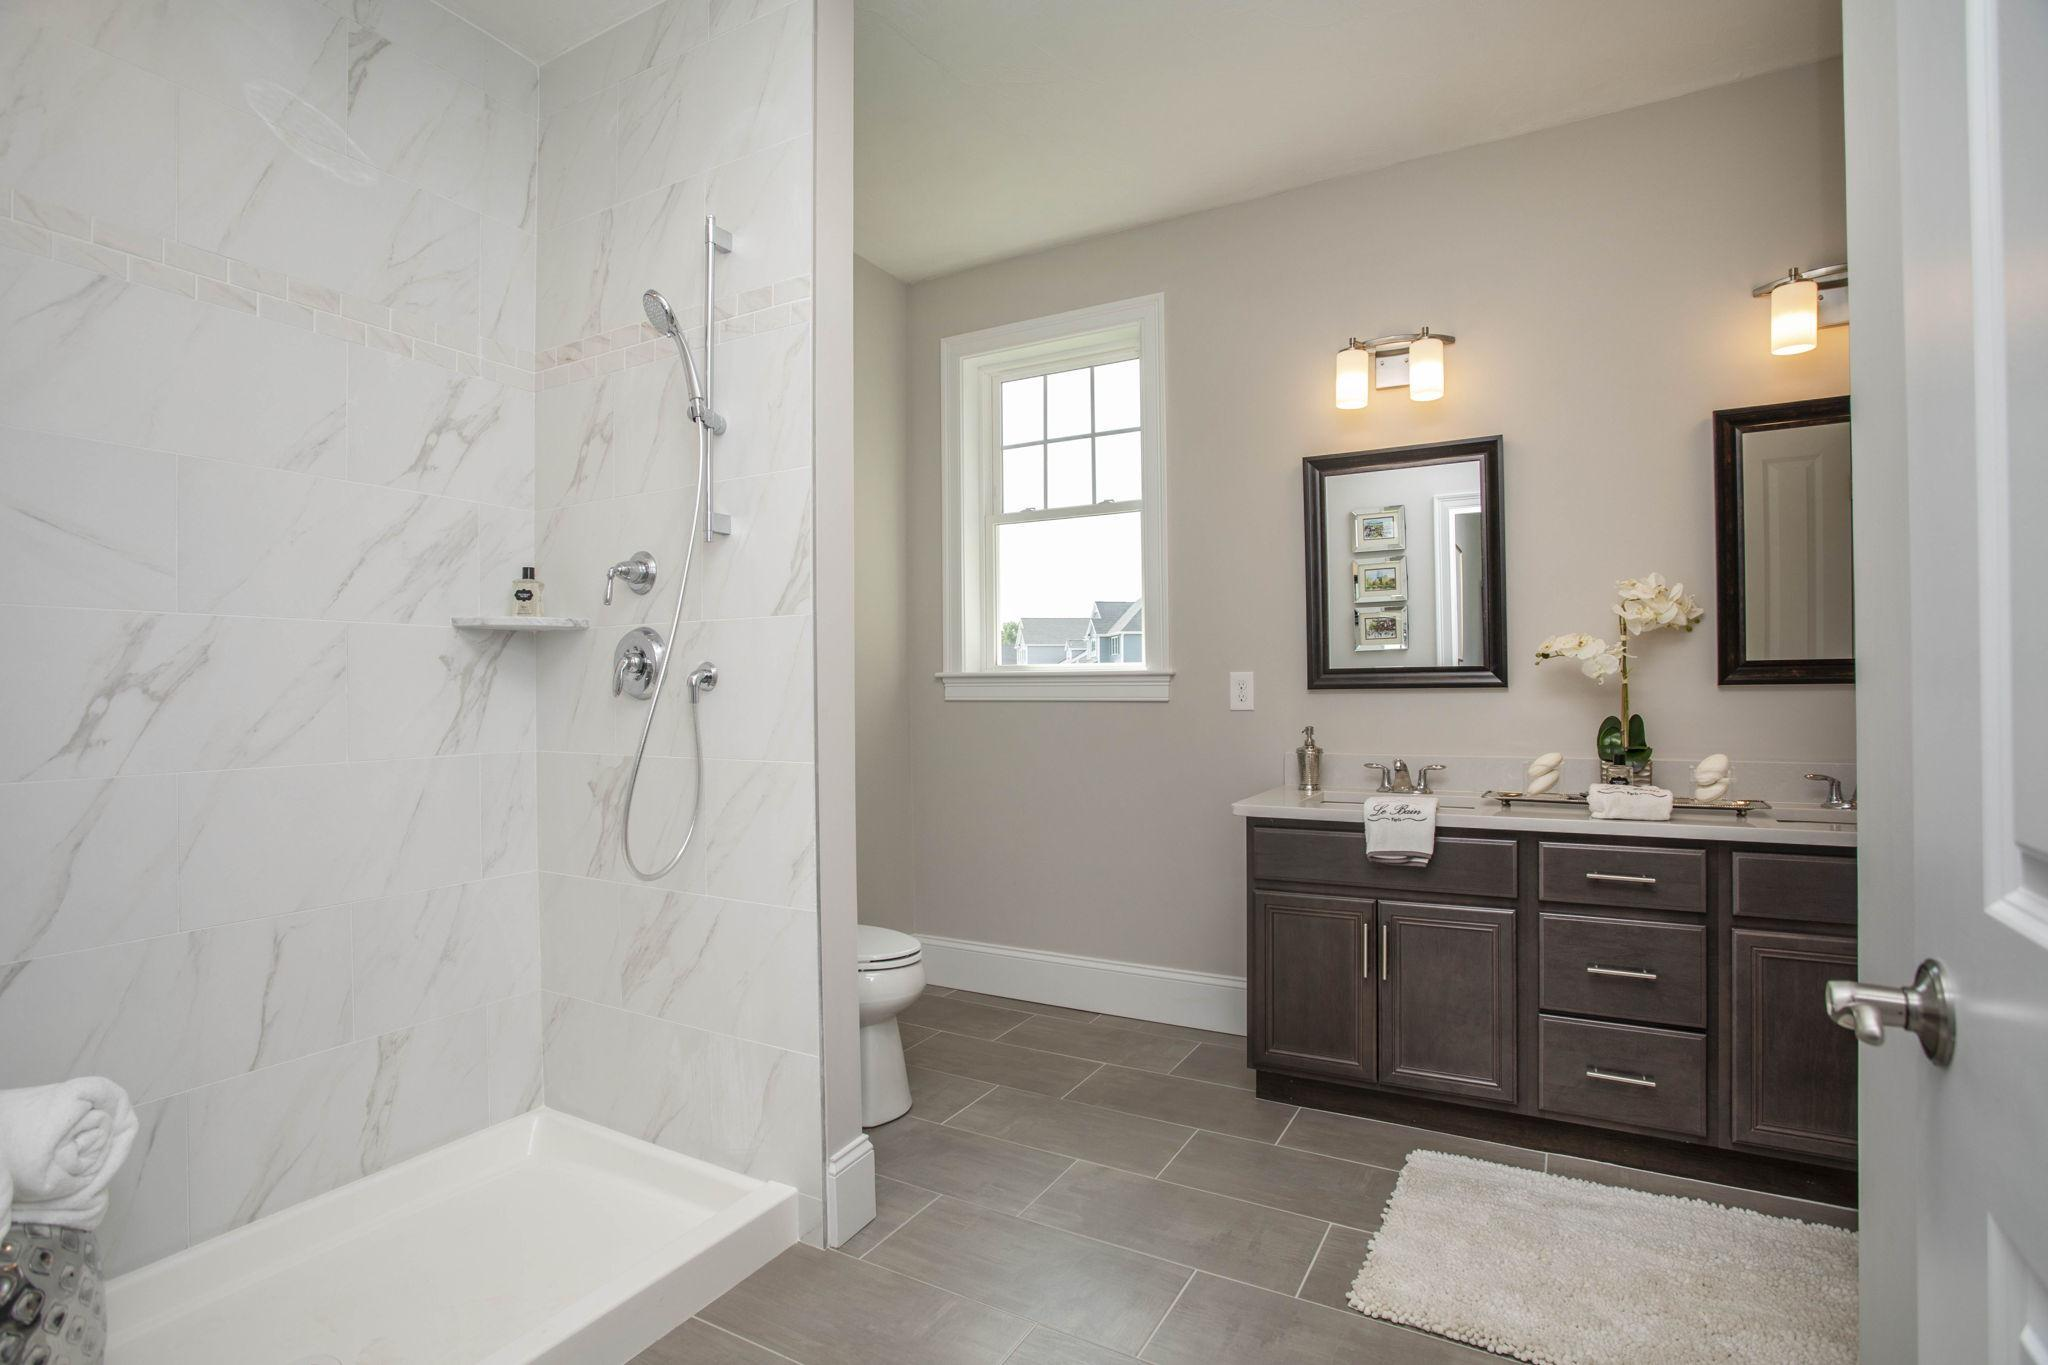 Bathroom featured in The Belmont By Stonebridge Homes Inc. in Boston, MA